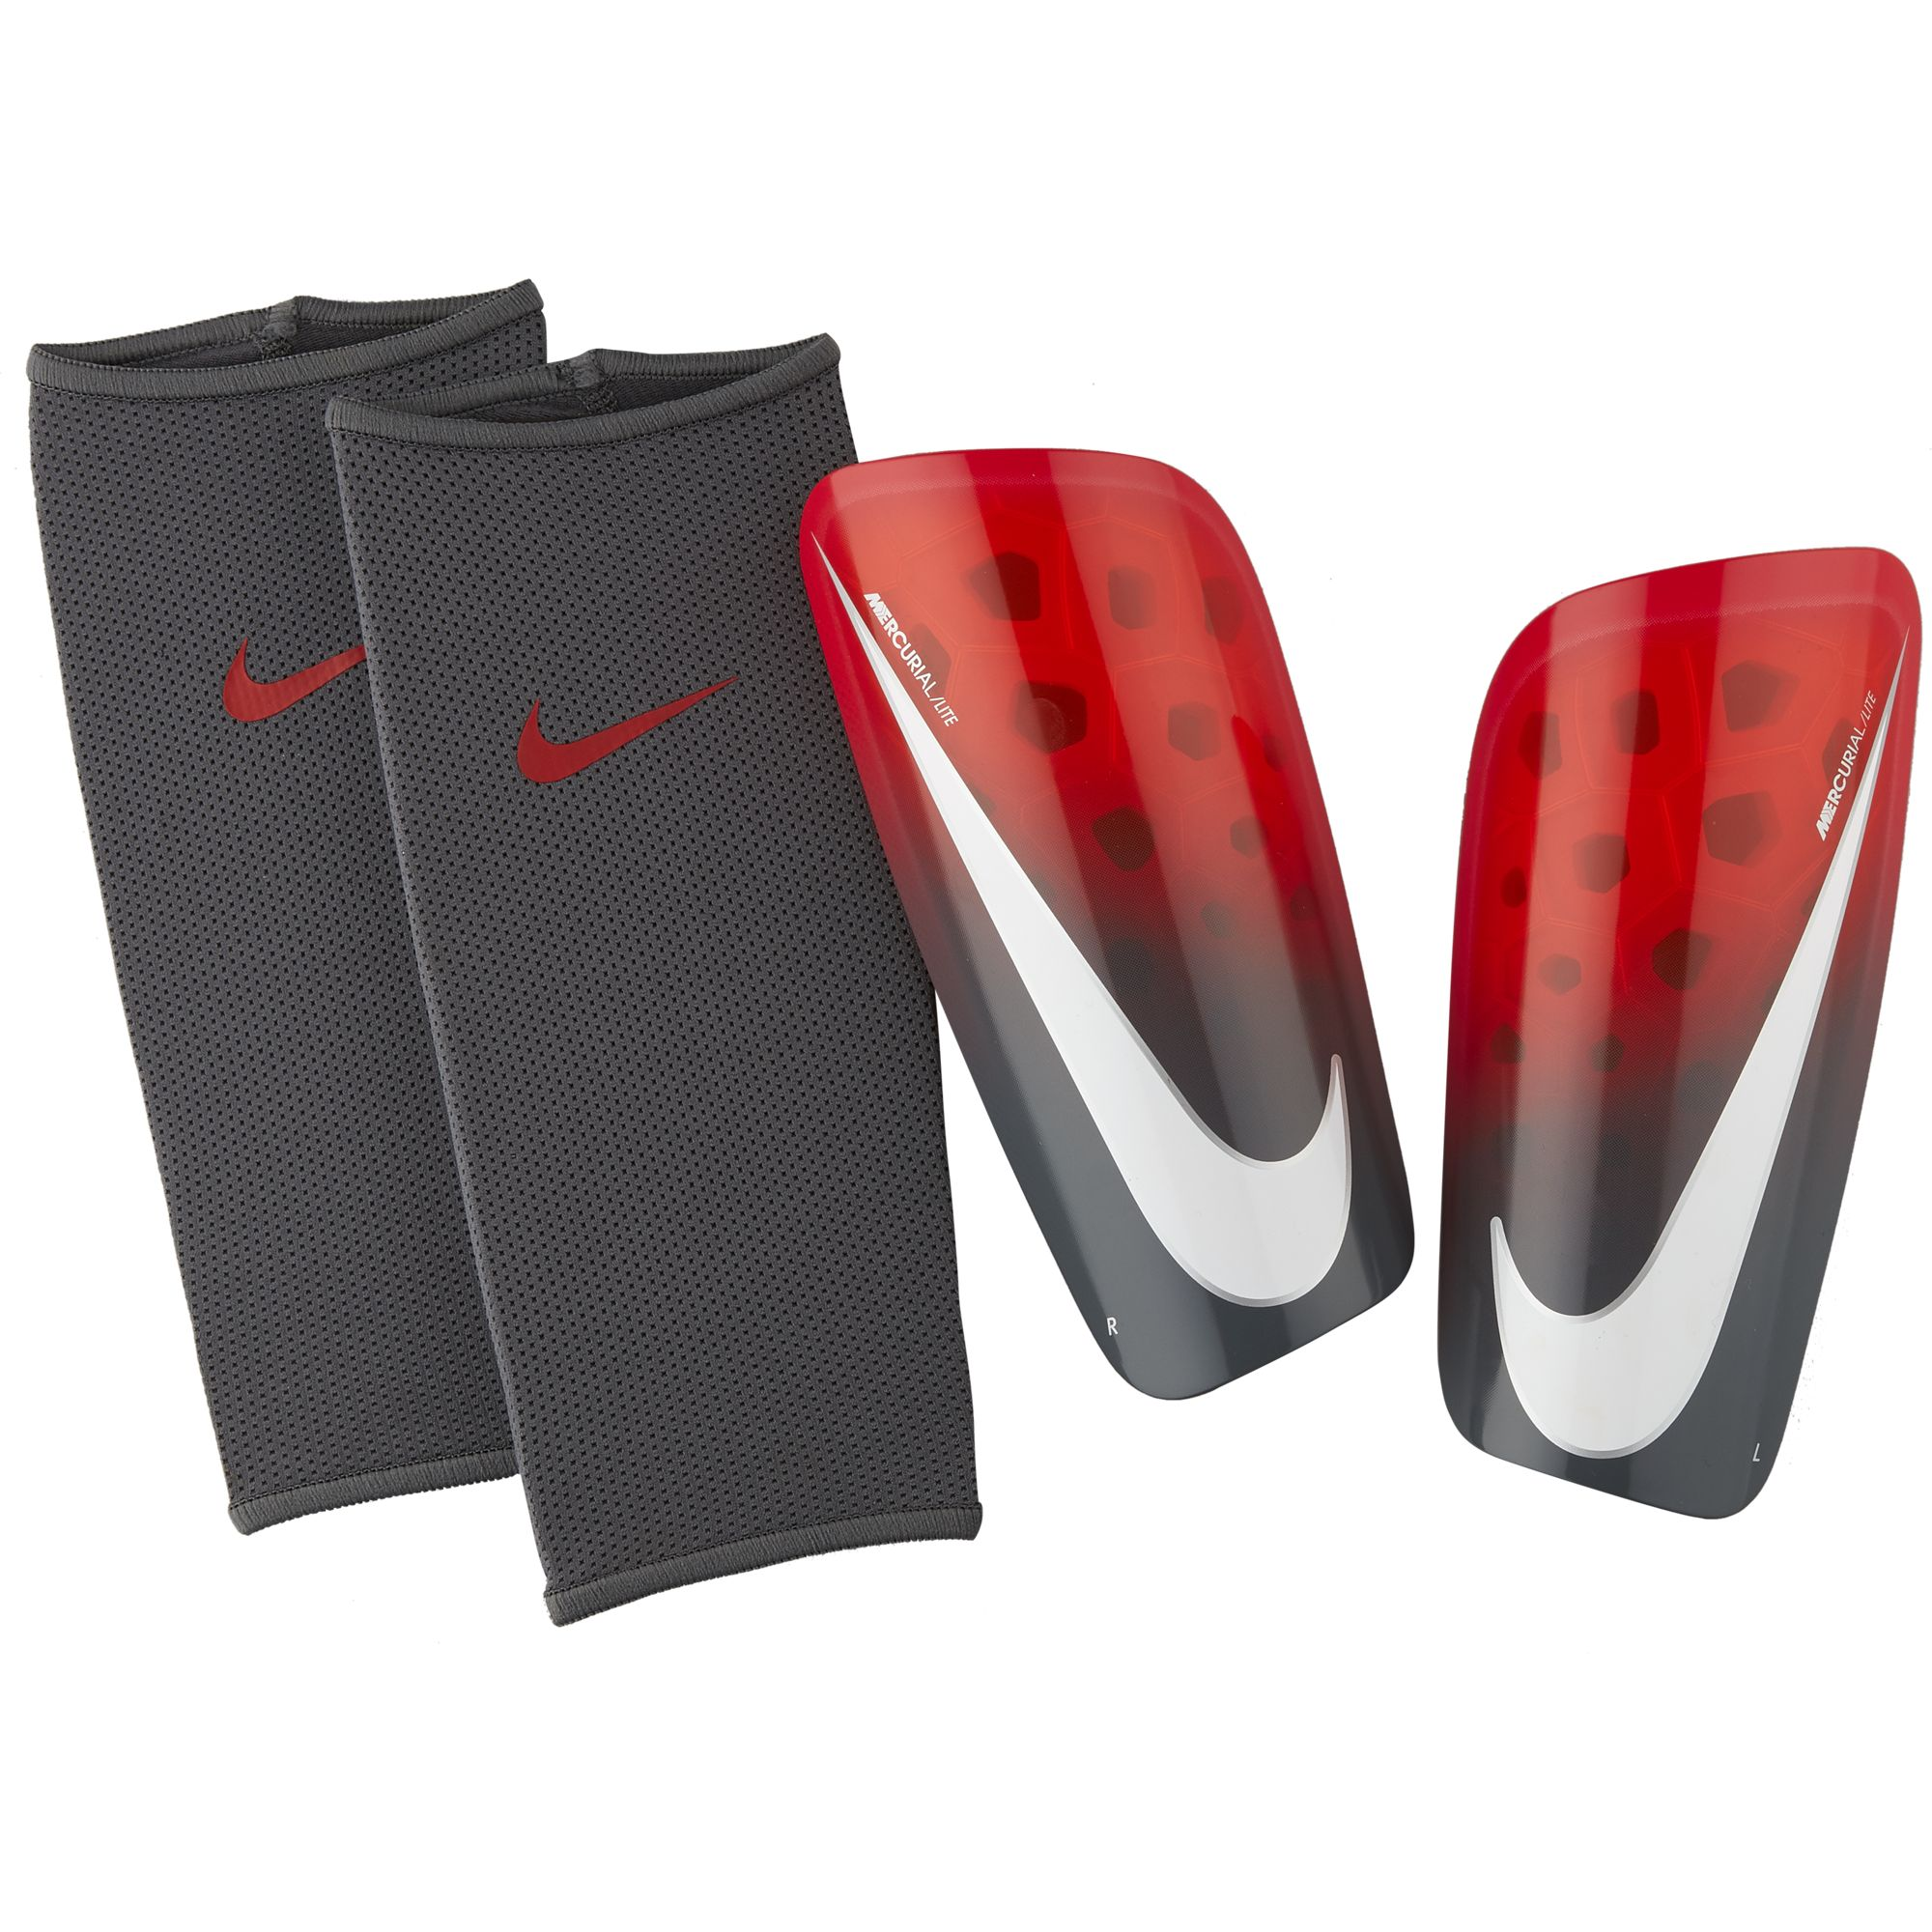 Mercurial Lite Shin Guards, Gray/Red, swatch